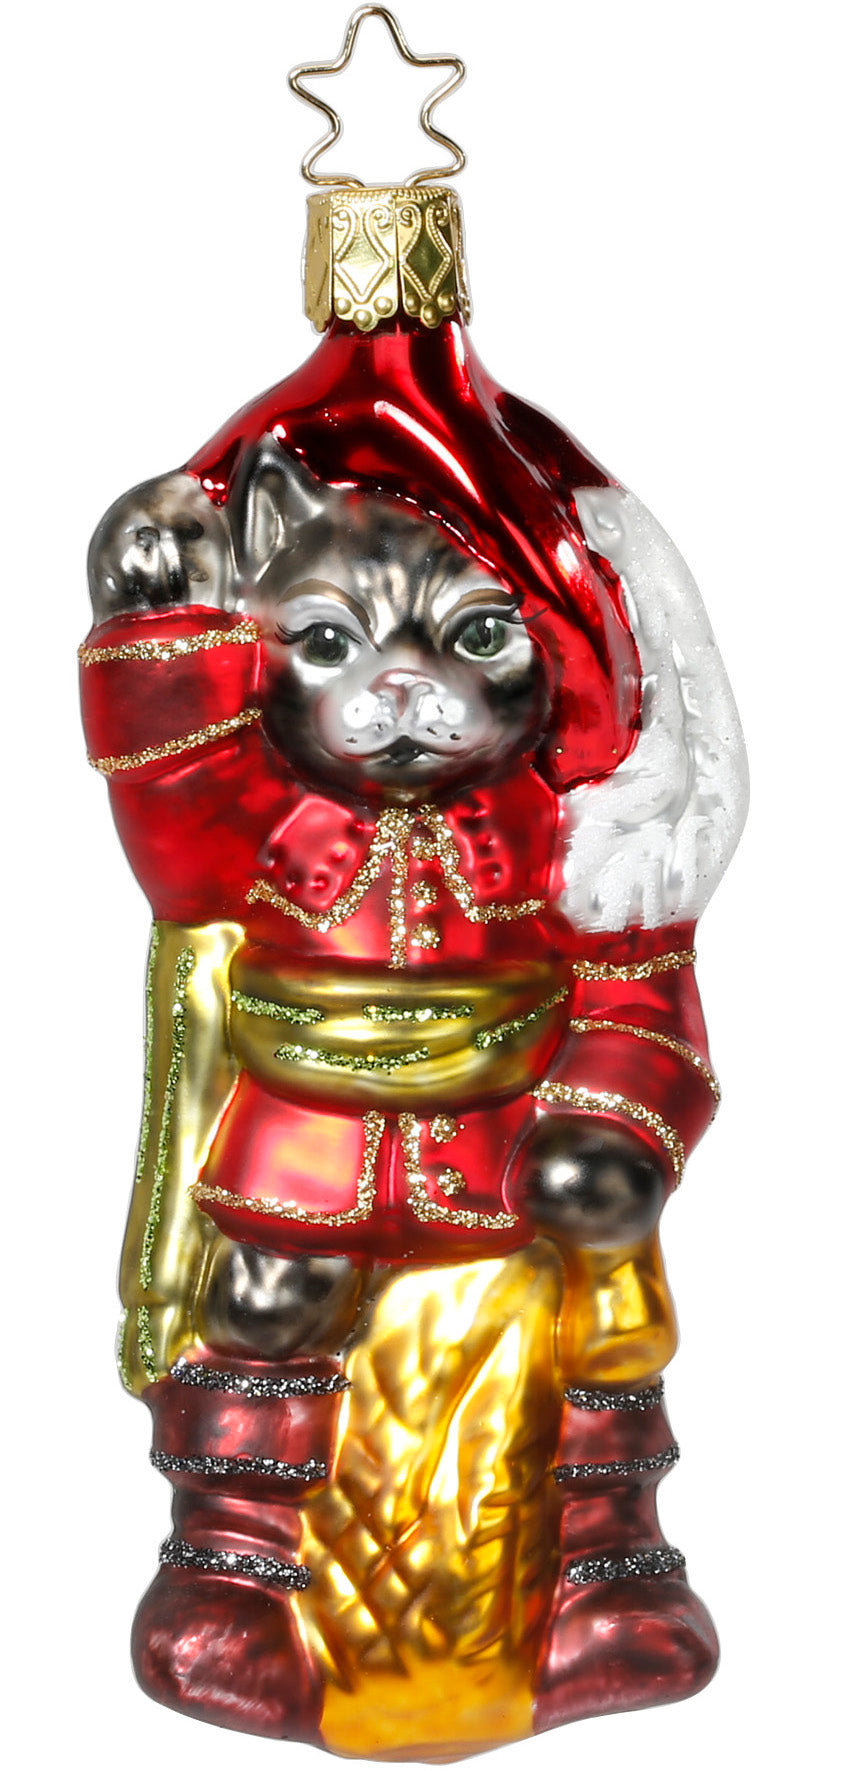 Puss'n' Boots Ornament